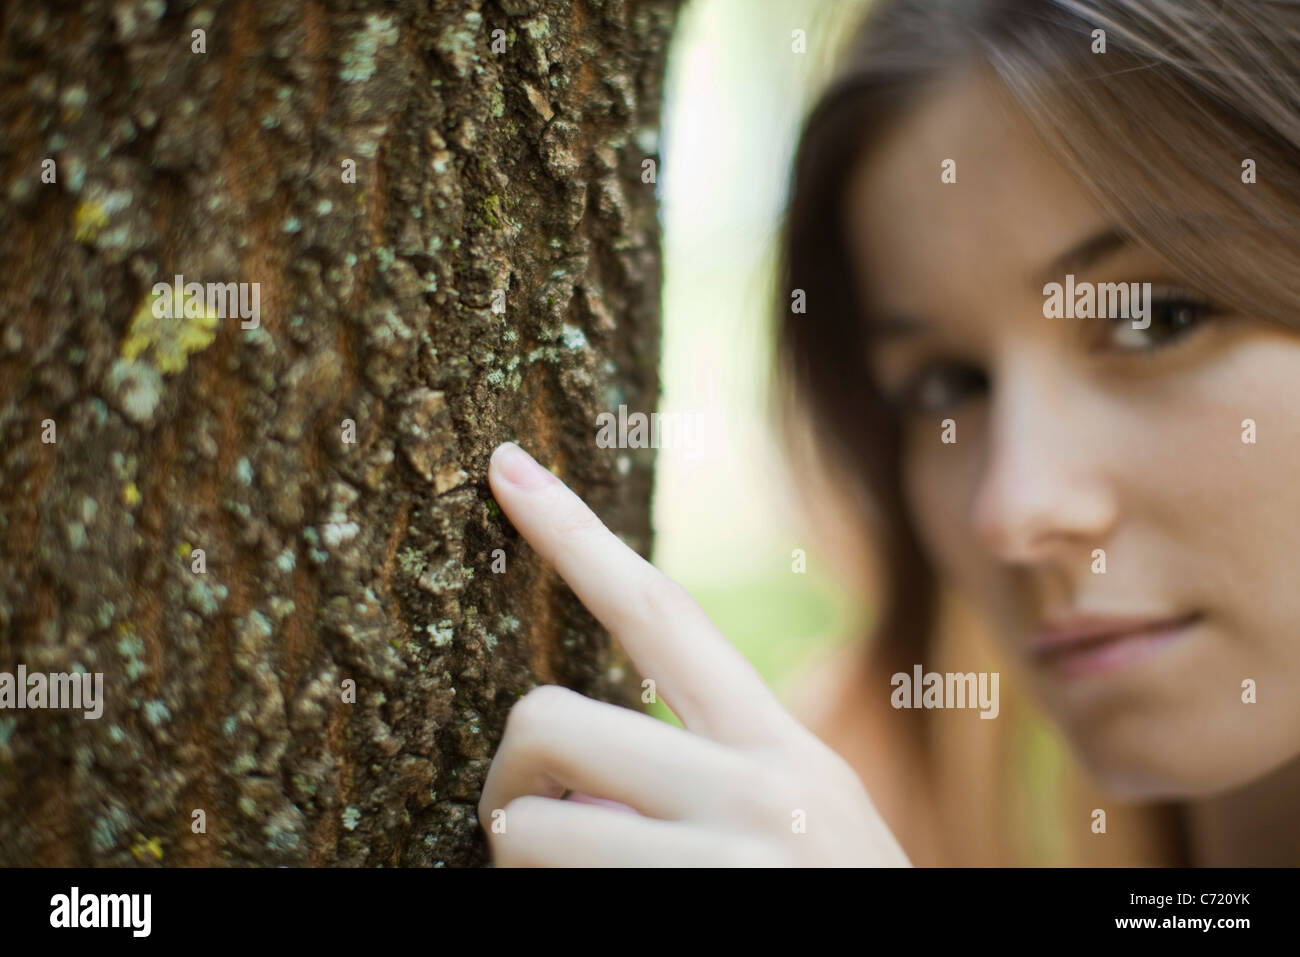 Young woman's finger touching tree trunk, cropped - Stock Image